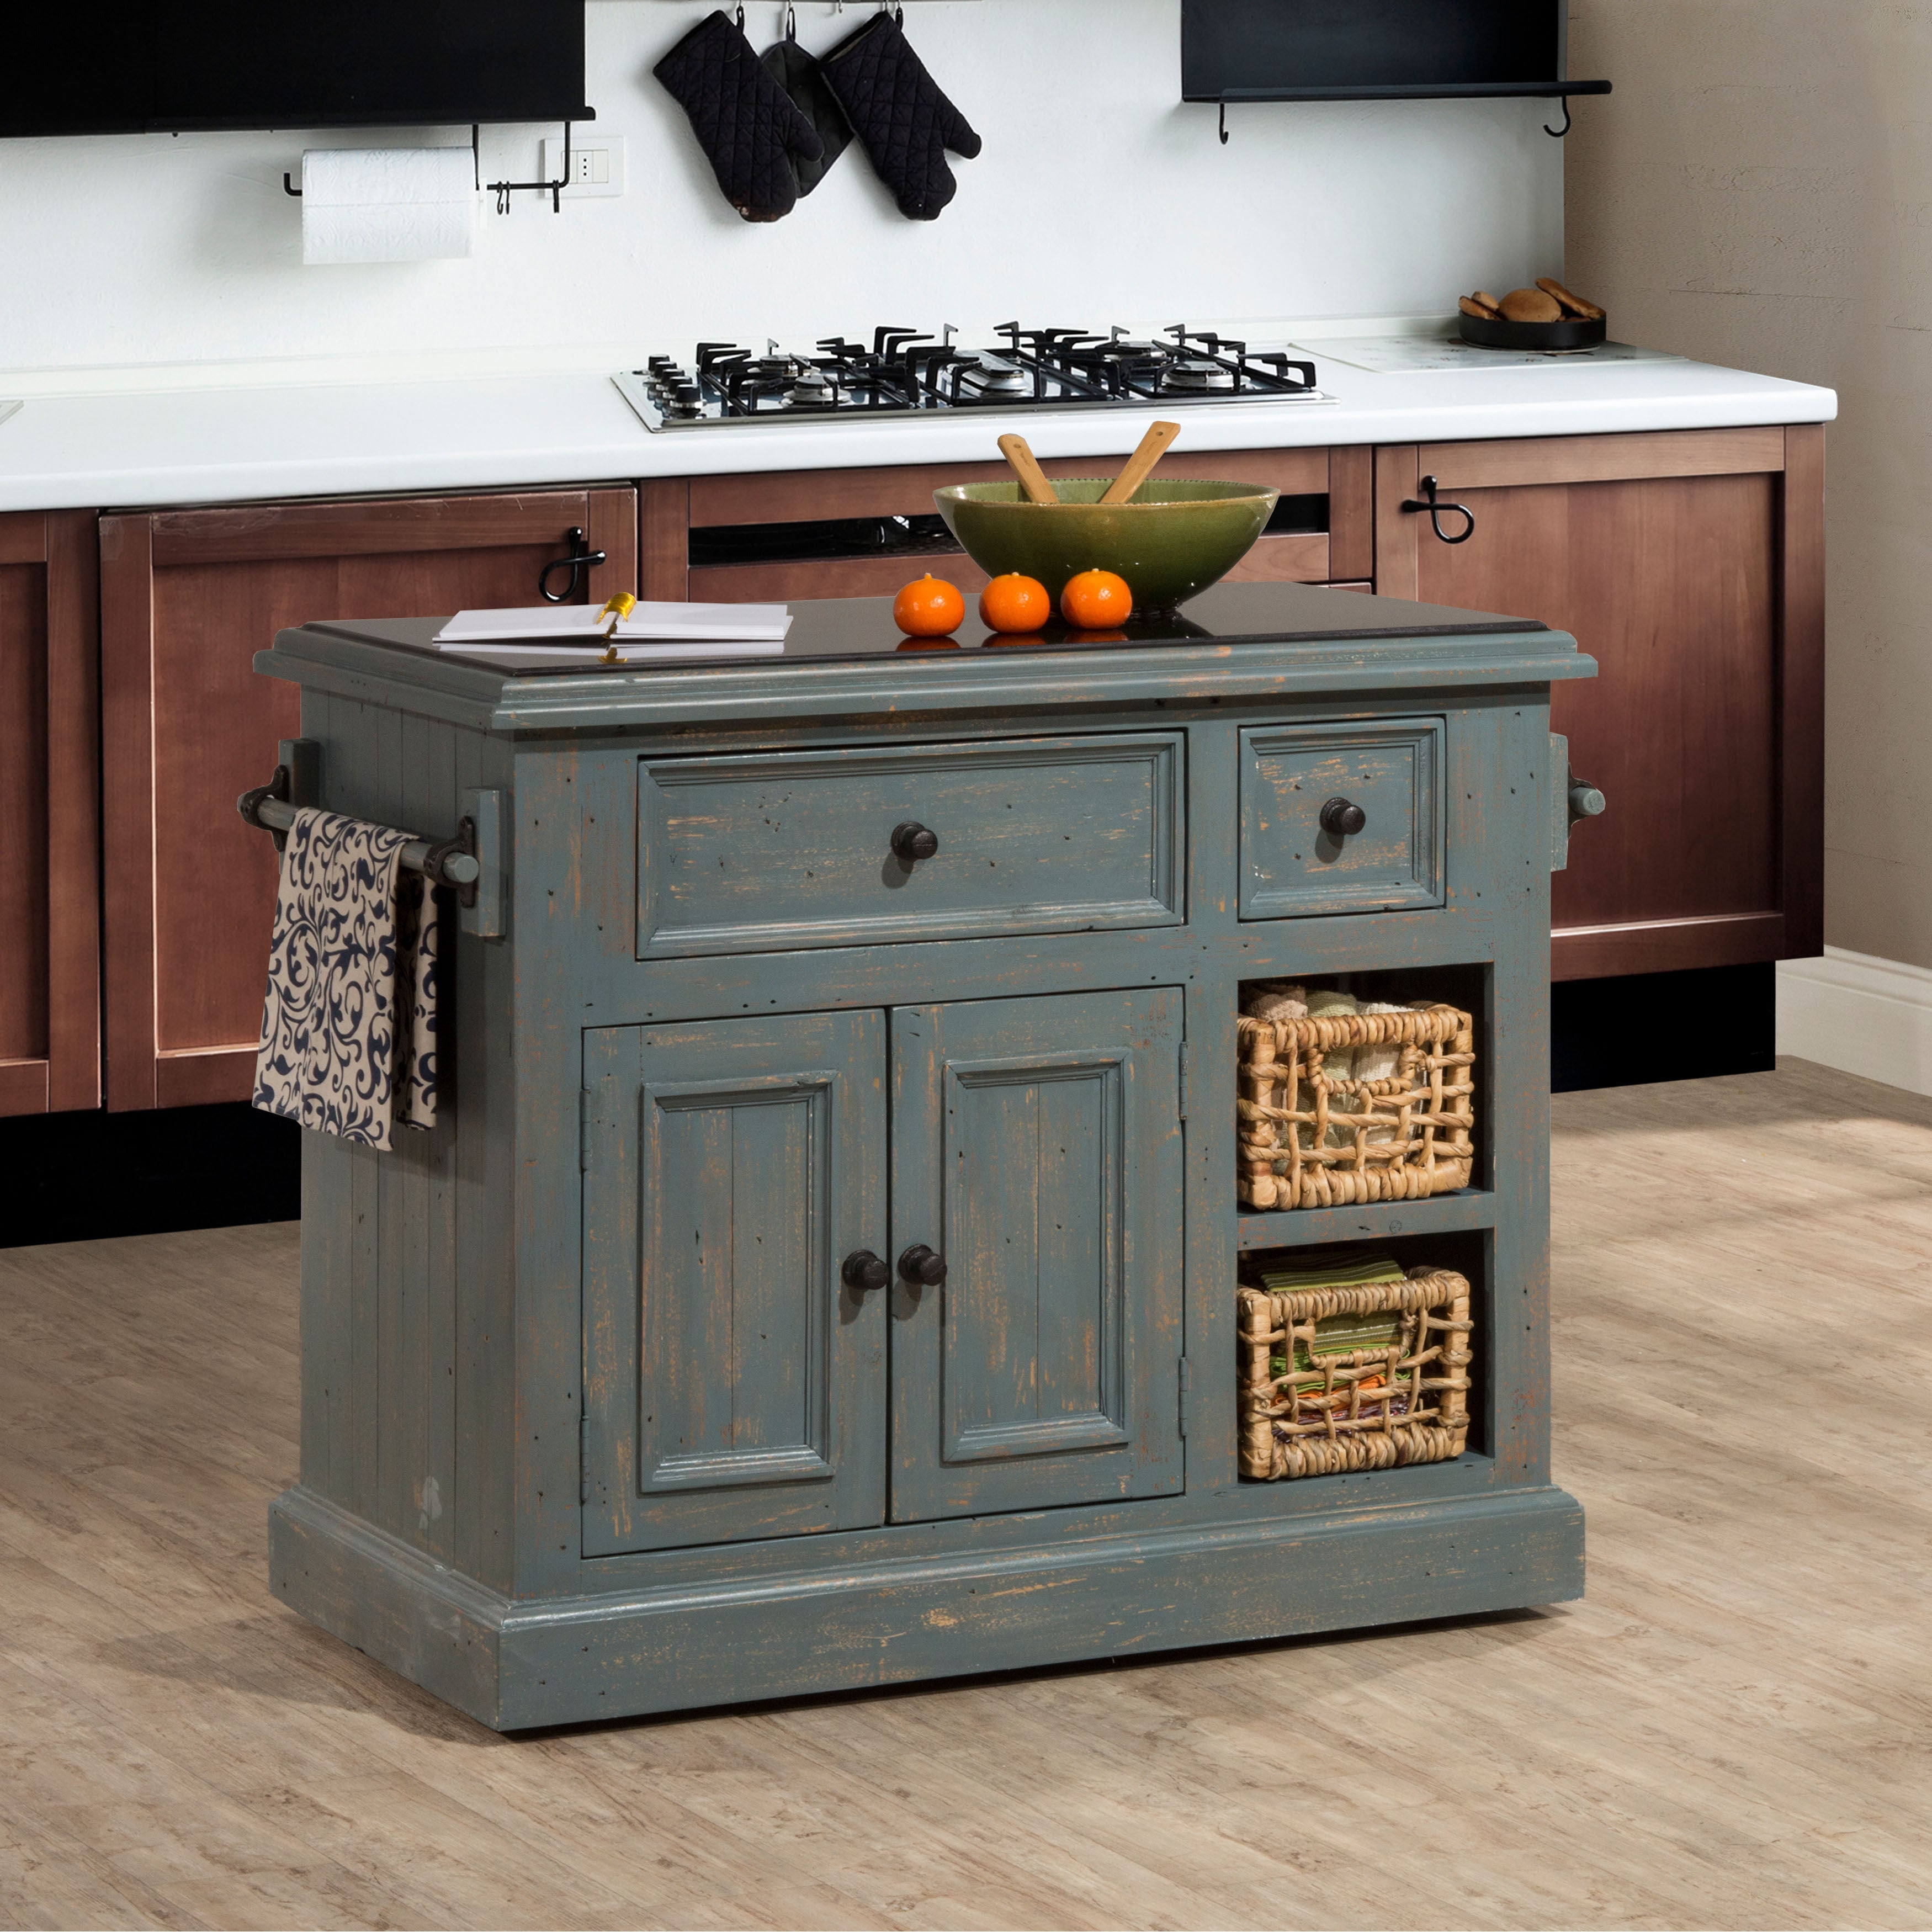 Superb The Curated Nomad Descanso Nordic Blue Kitchen Island With Baskets Download Free Architecture Designs Scobabritishbridgeorg